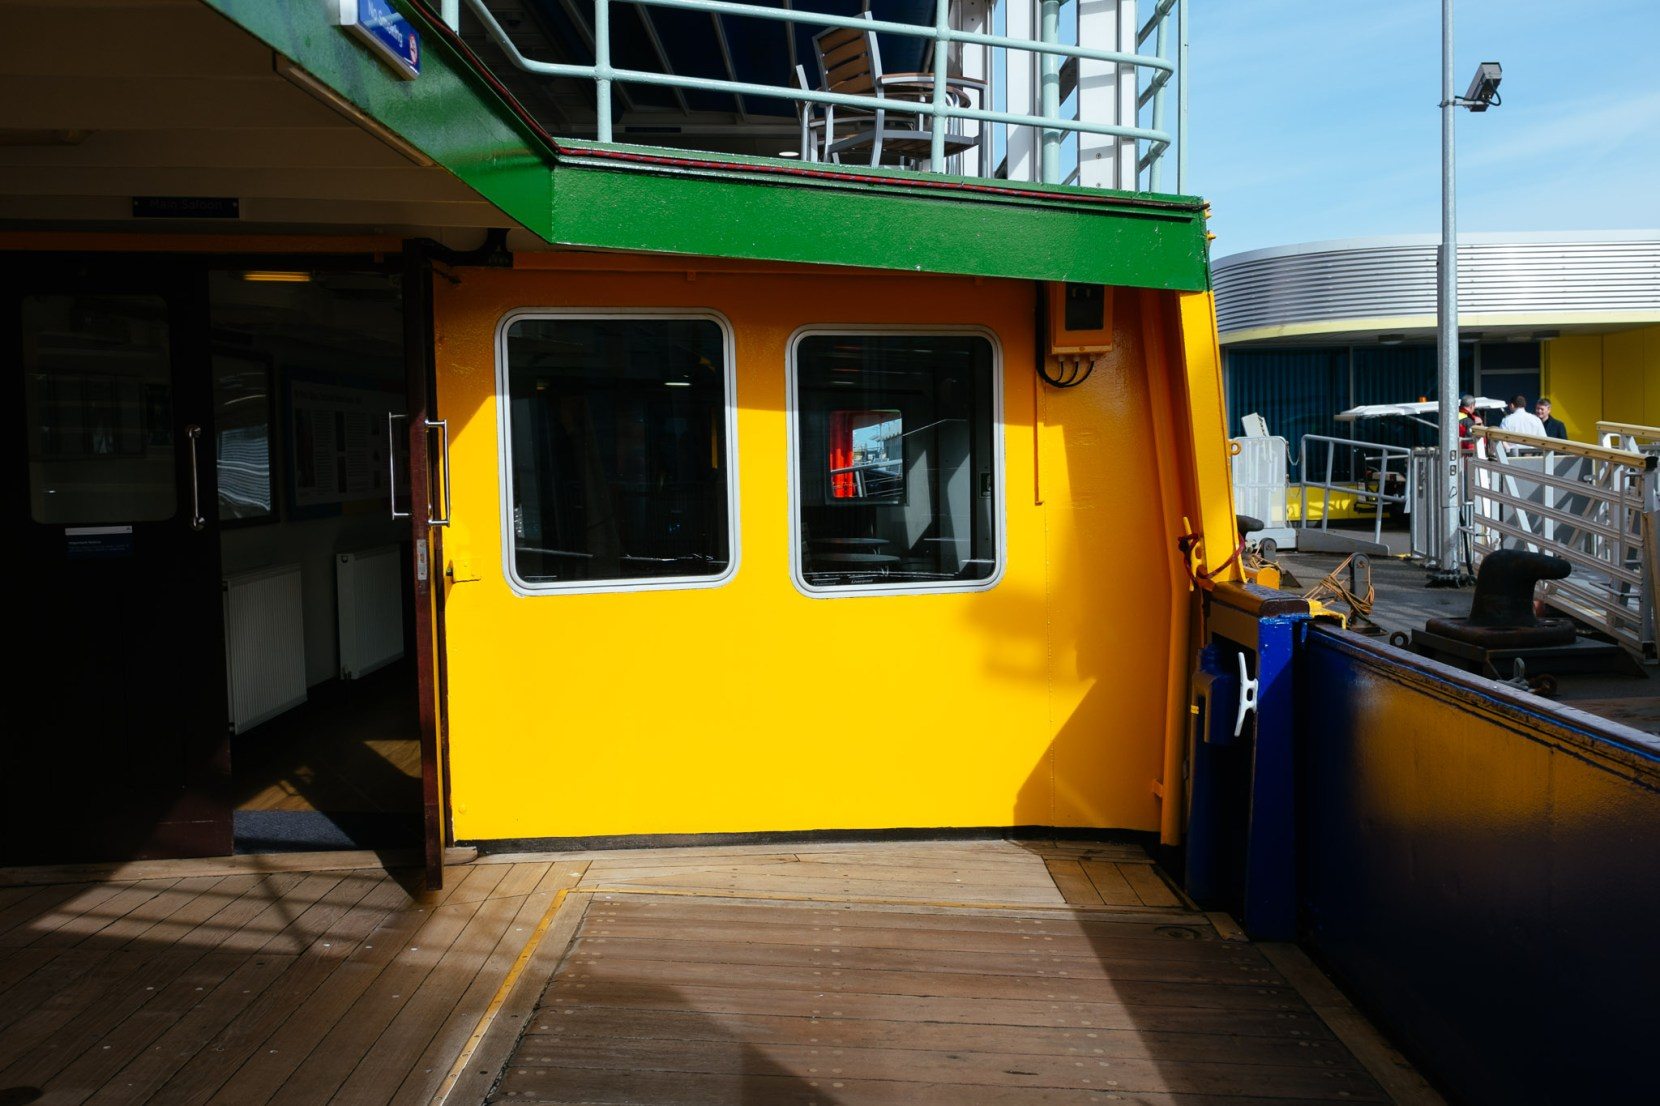 dazzle-ferry-liverpool-6303